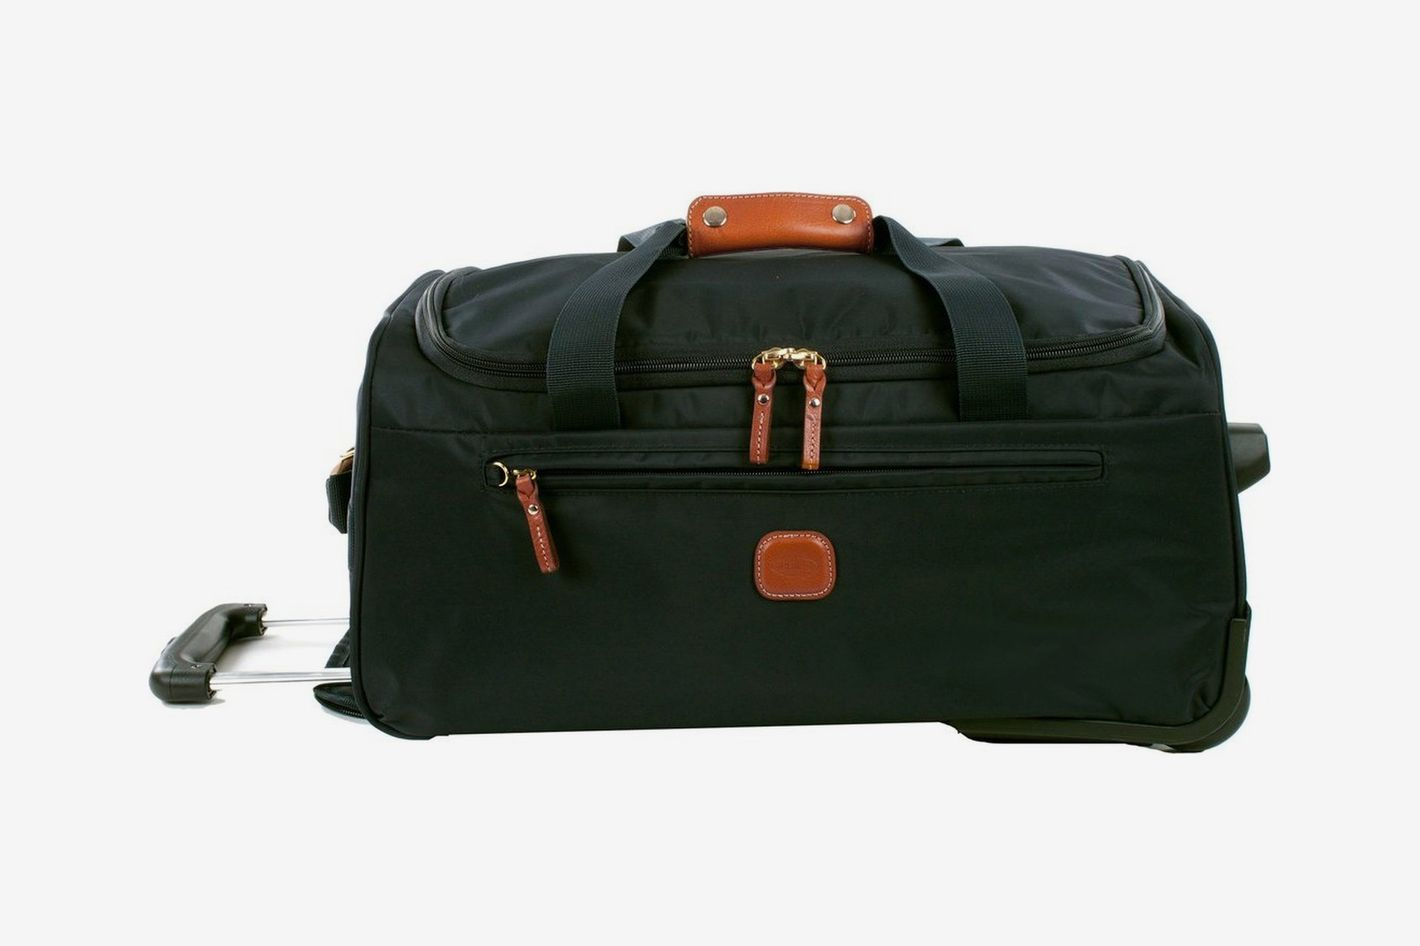 Bric s X-Bag 21-Inch Rolling Carry-On Duffel Bag 675e413bc27